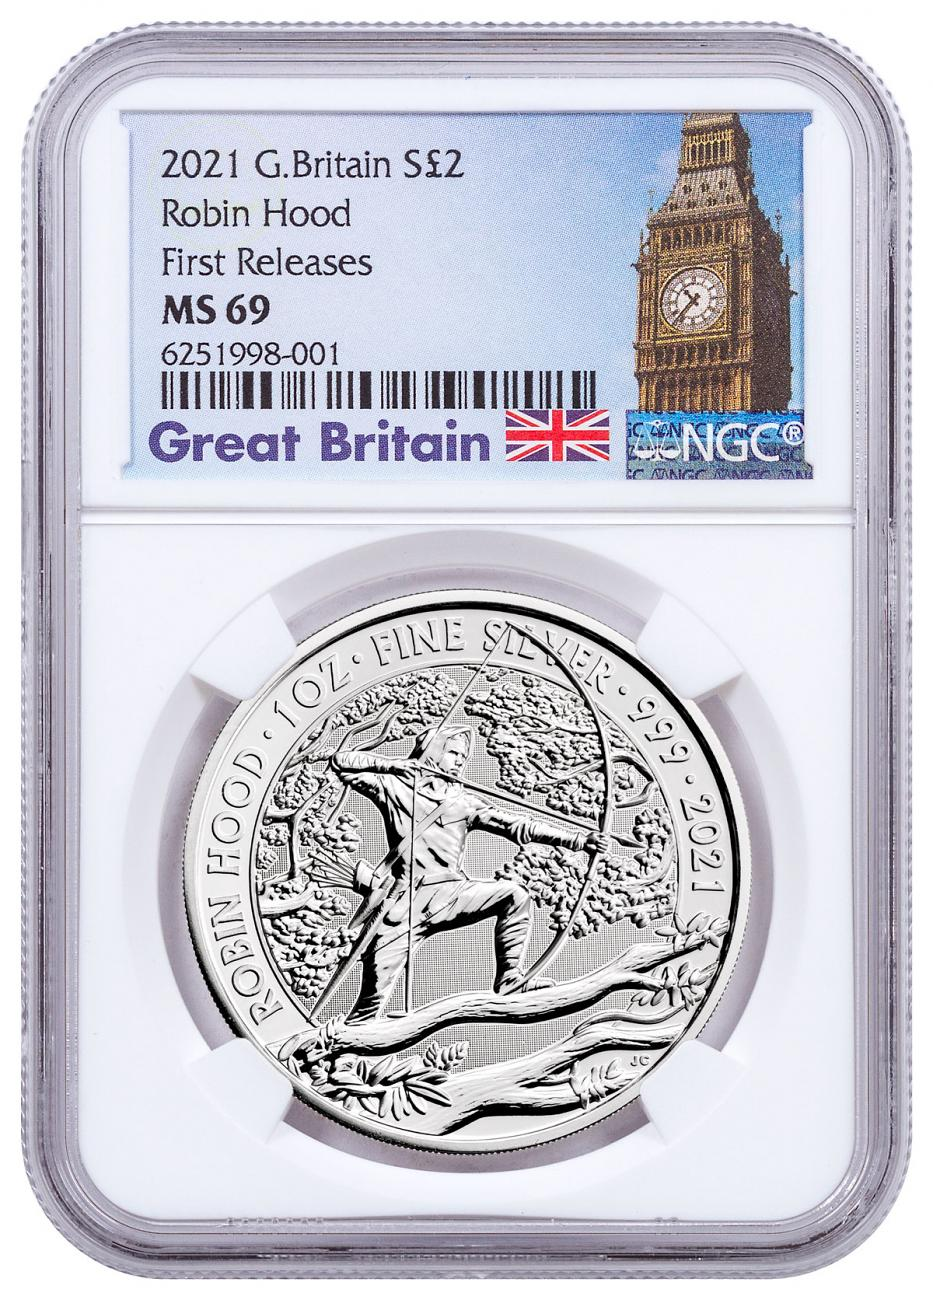 2021 Great Britain Myths & Legends - Robin Hood 1 oz Silver £2 Coin NGC MS69 FR Exclusive Big Ben Label